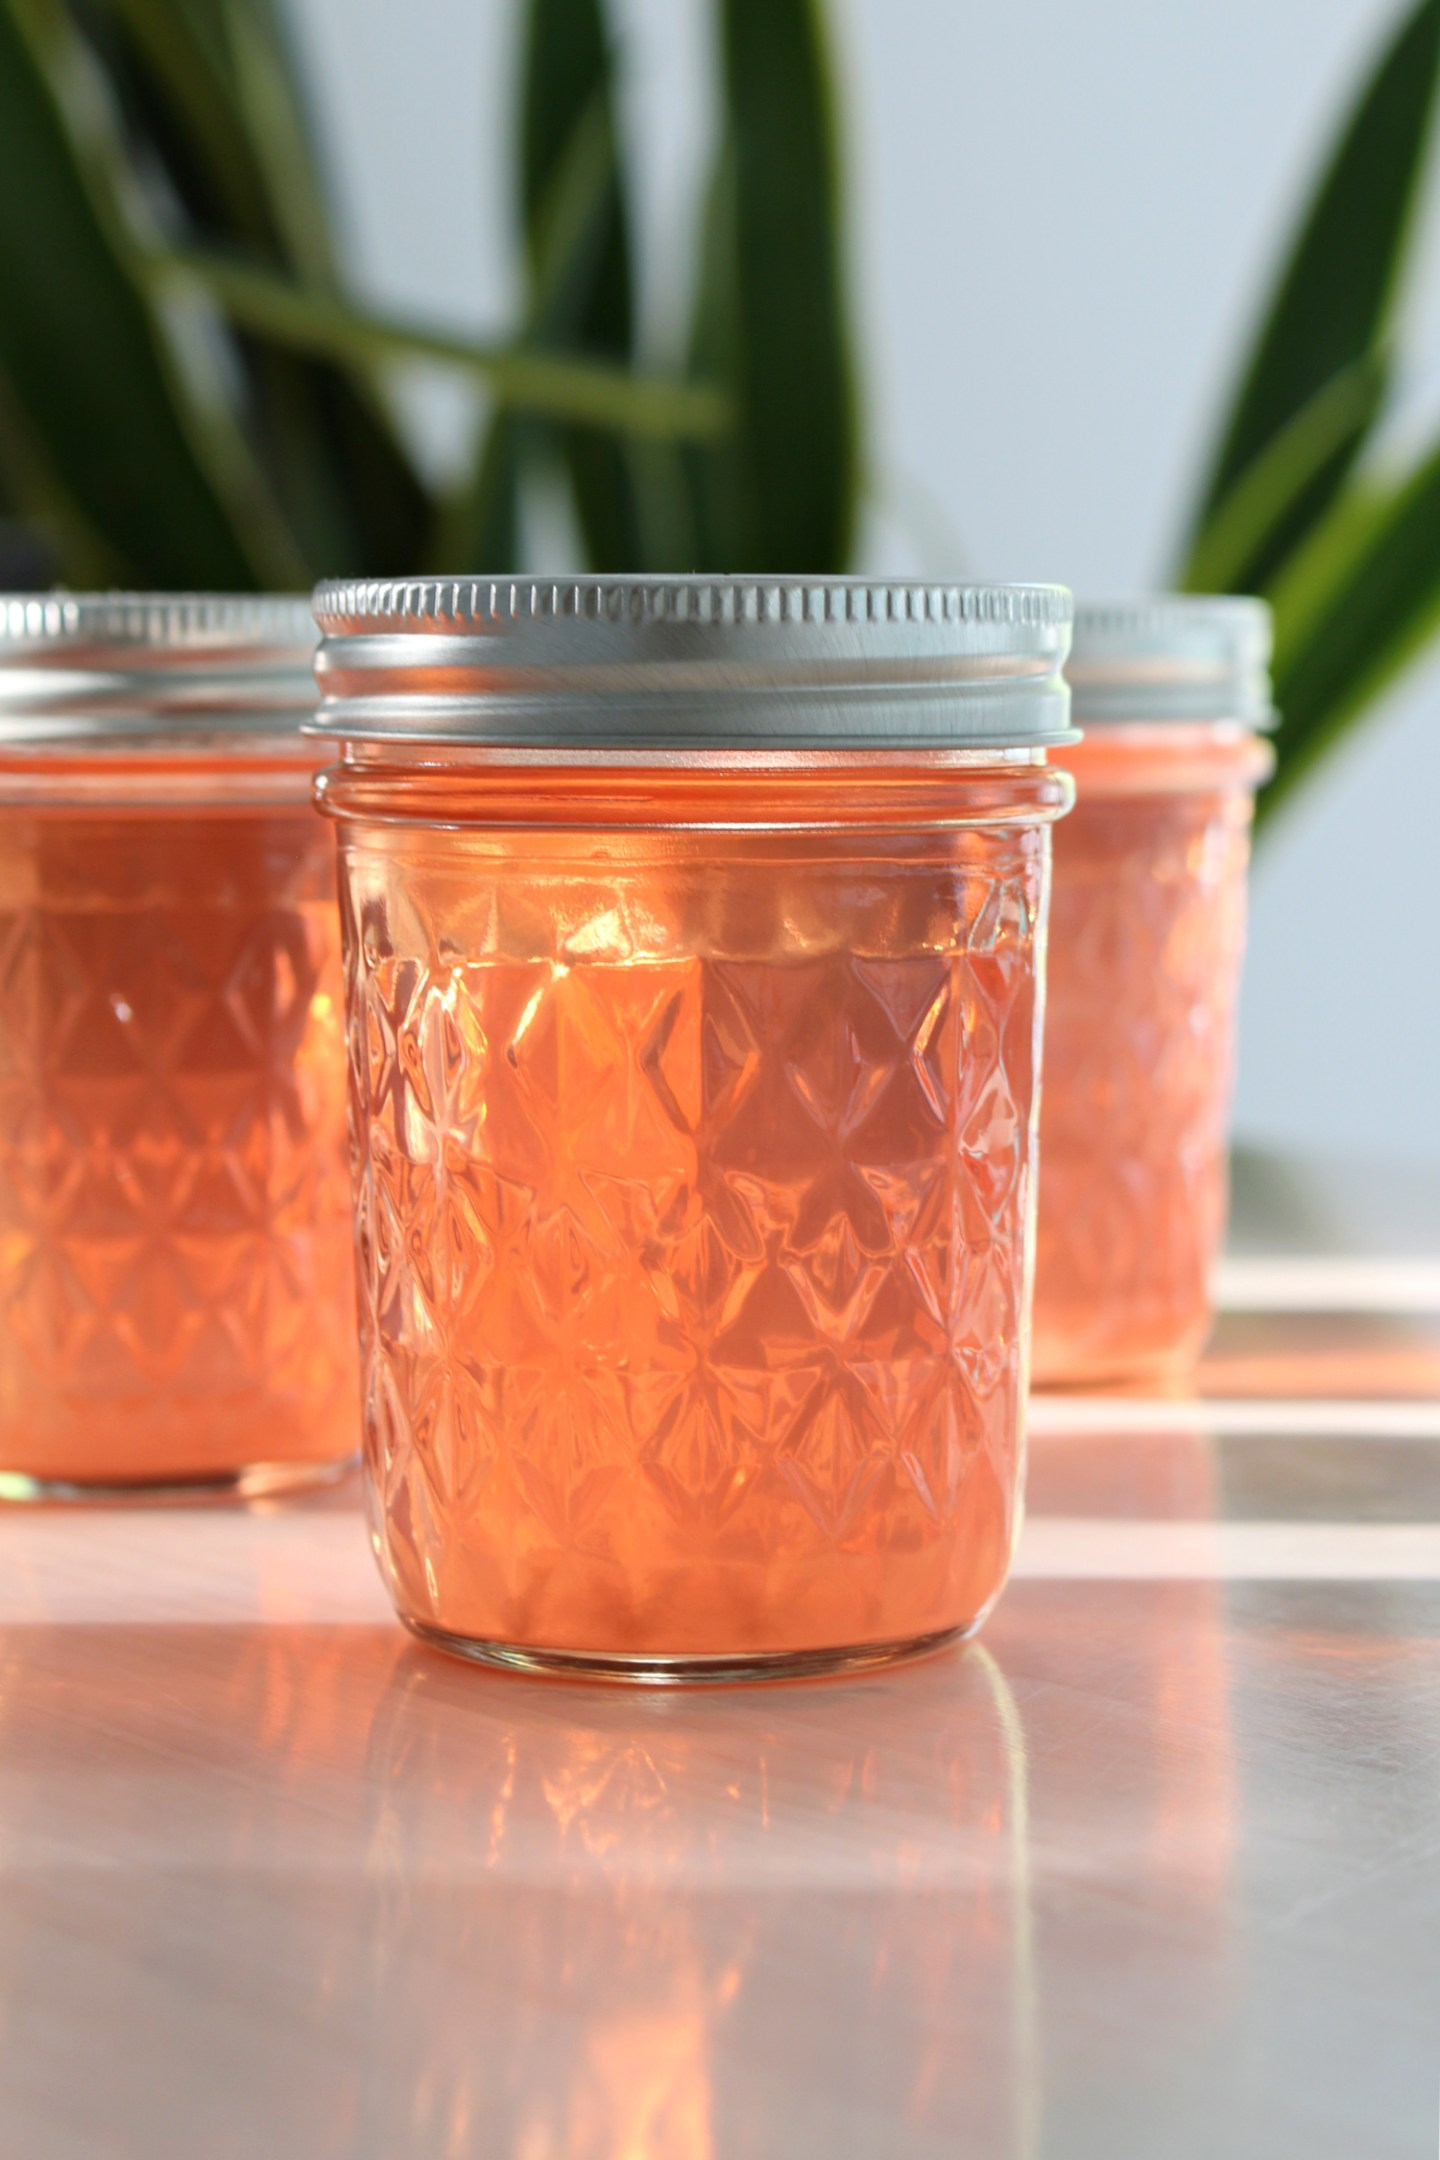 How to Make Rhubarb Simple Syrup